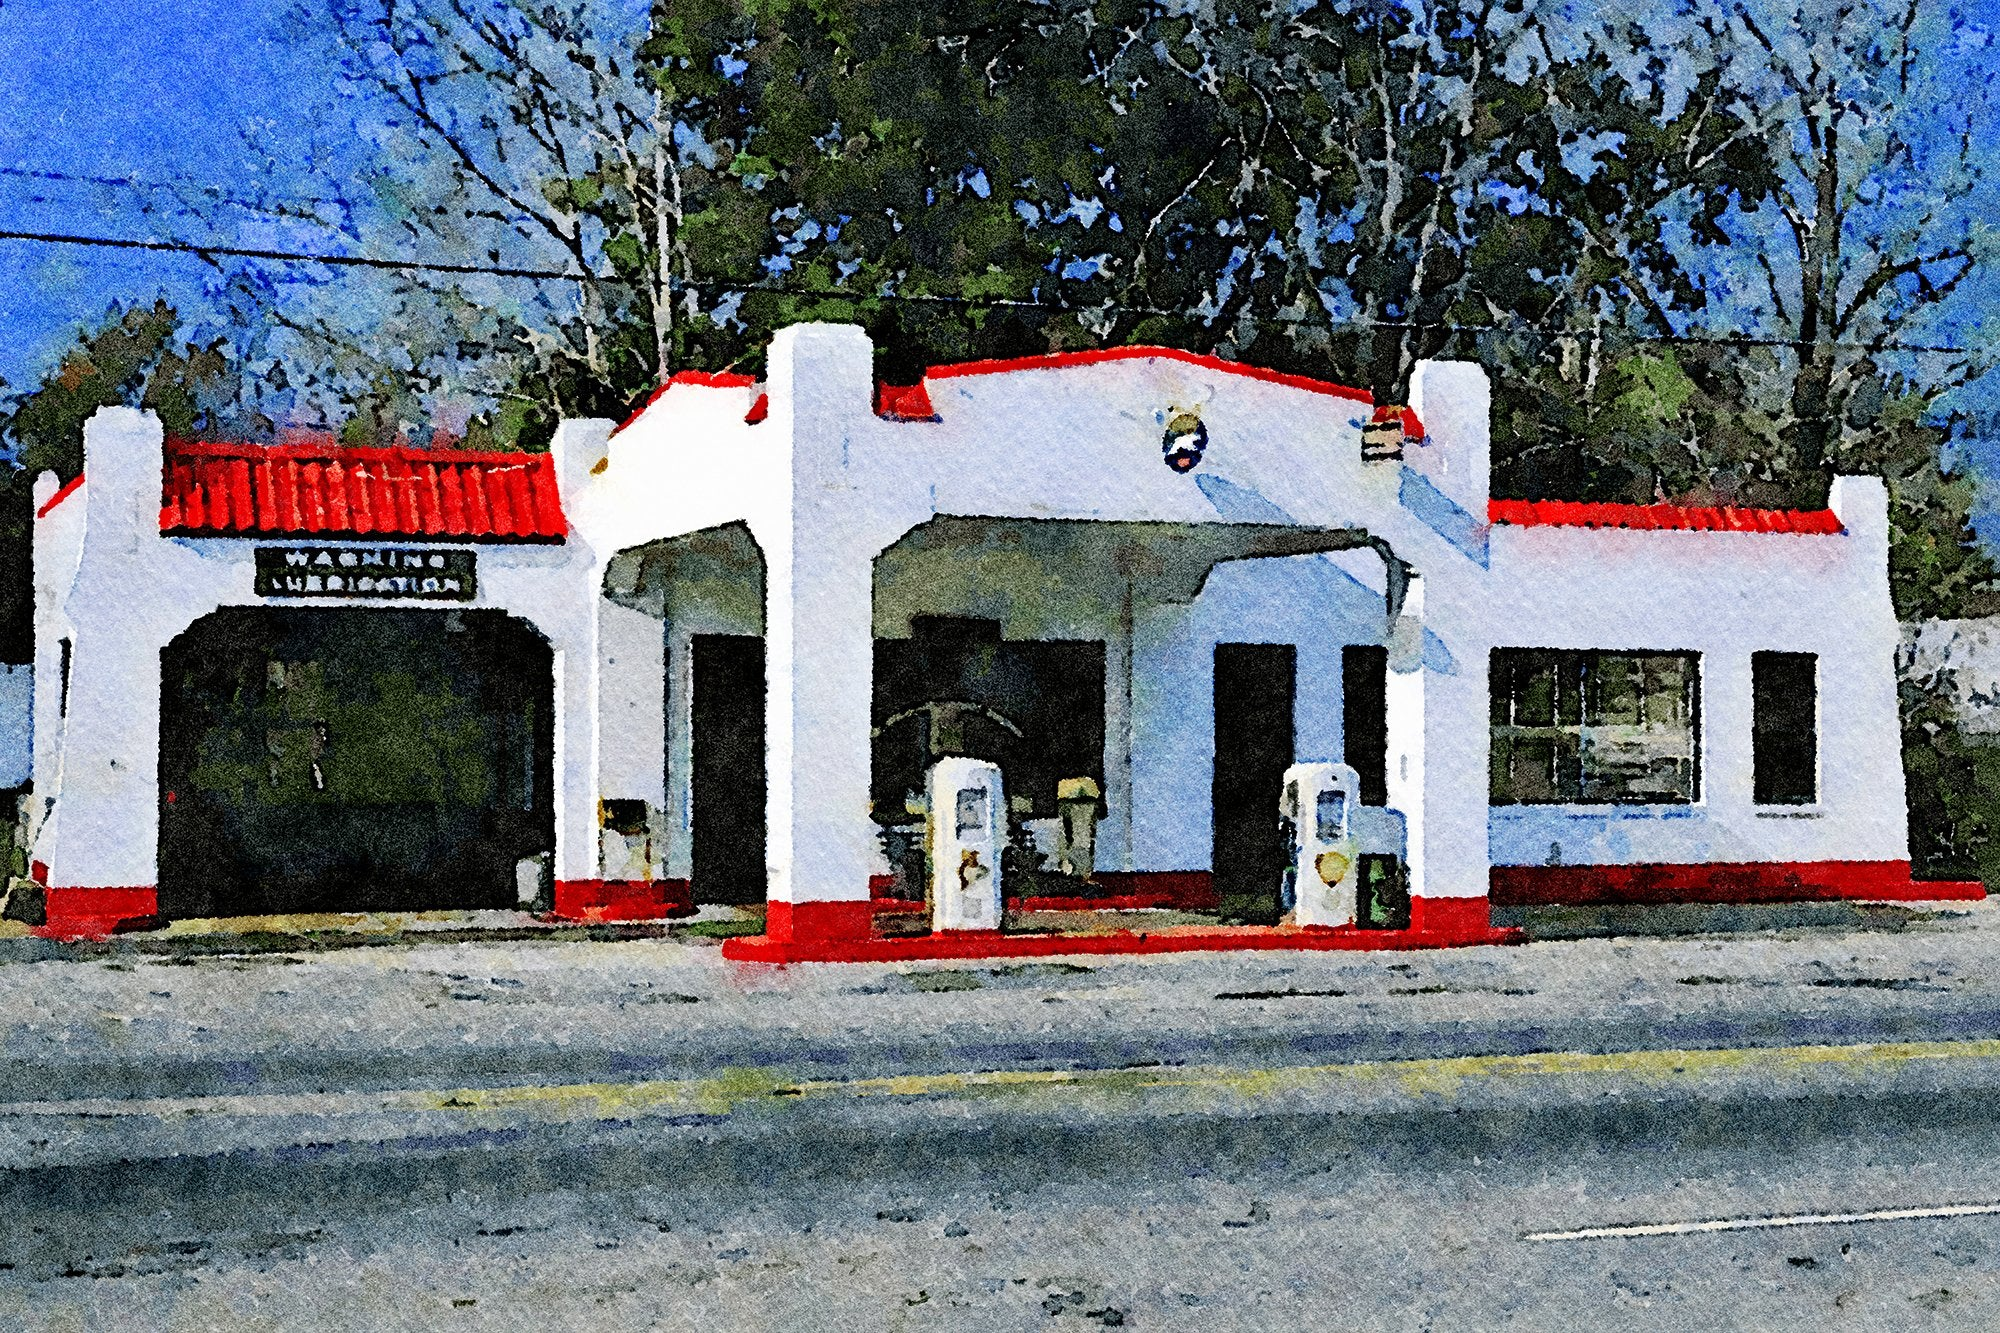 Fina Gas Station, Route 17, Kingsland, Georgia, Reworked, Series 1